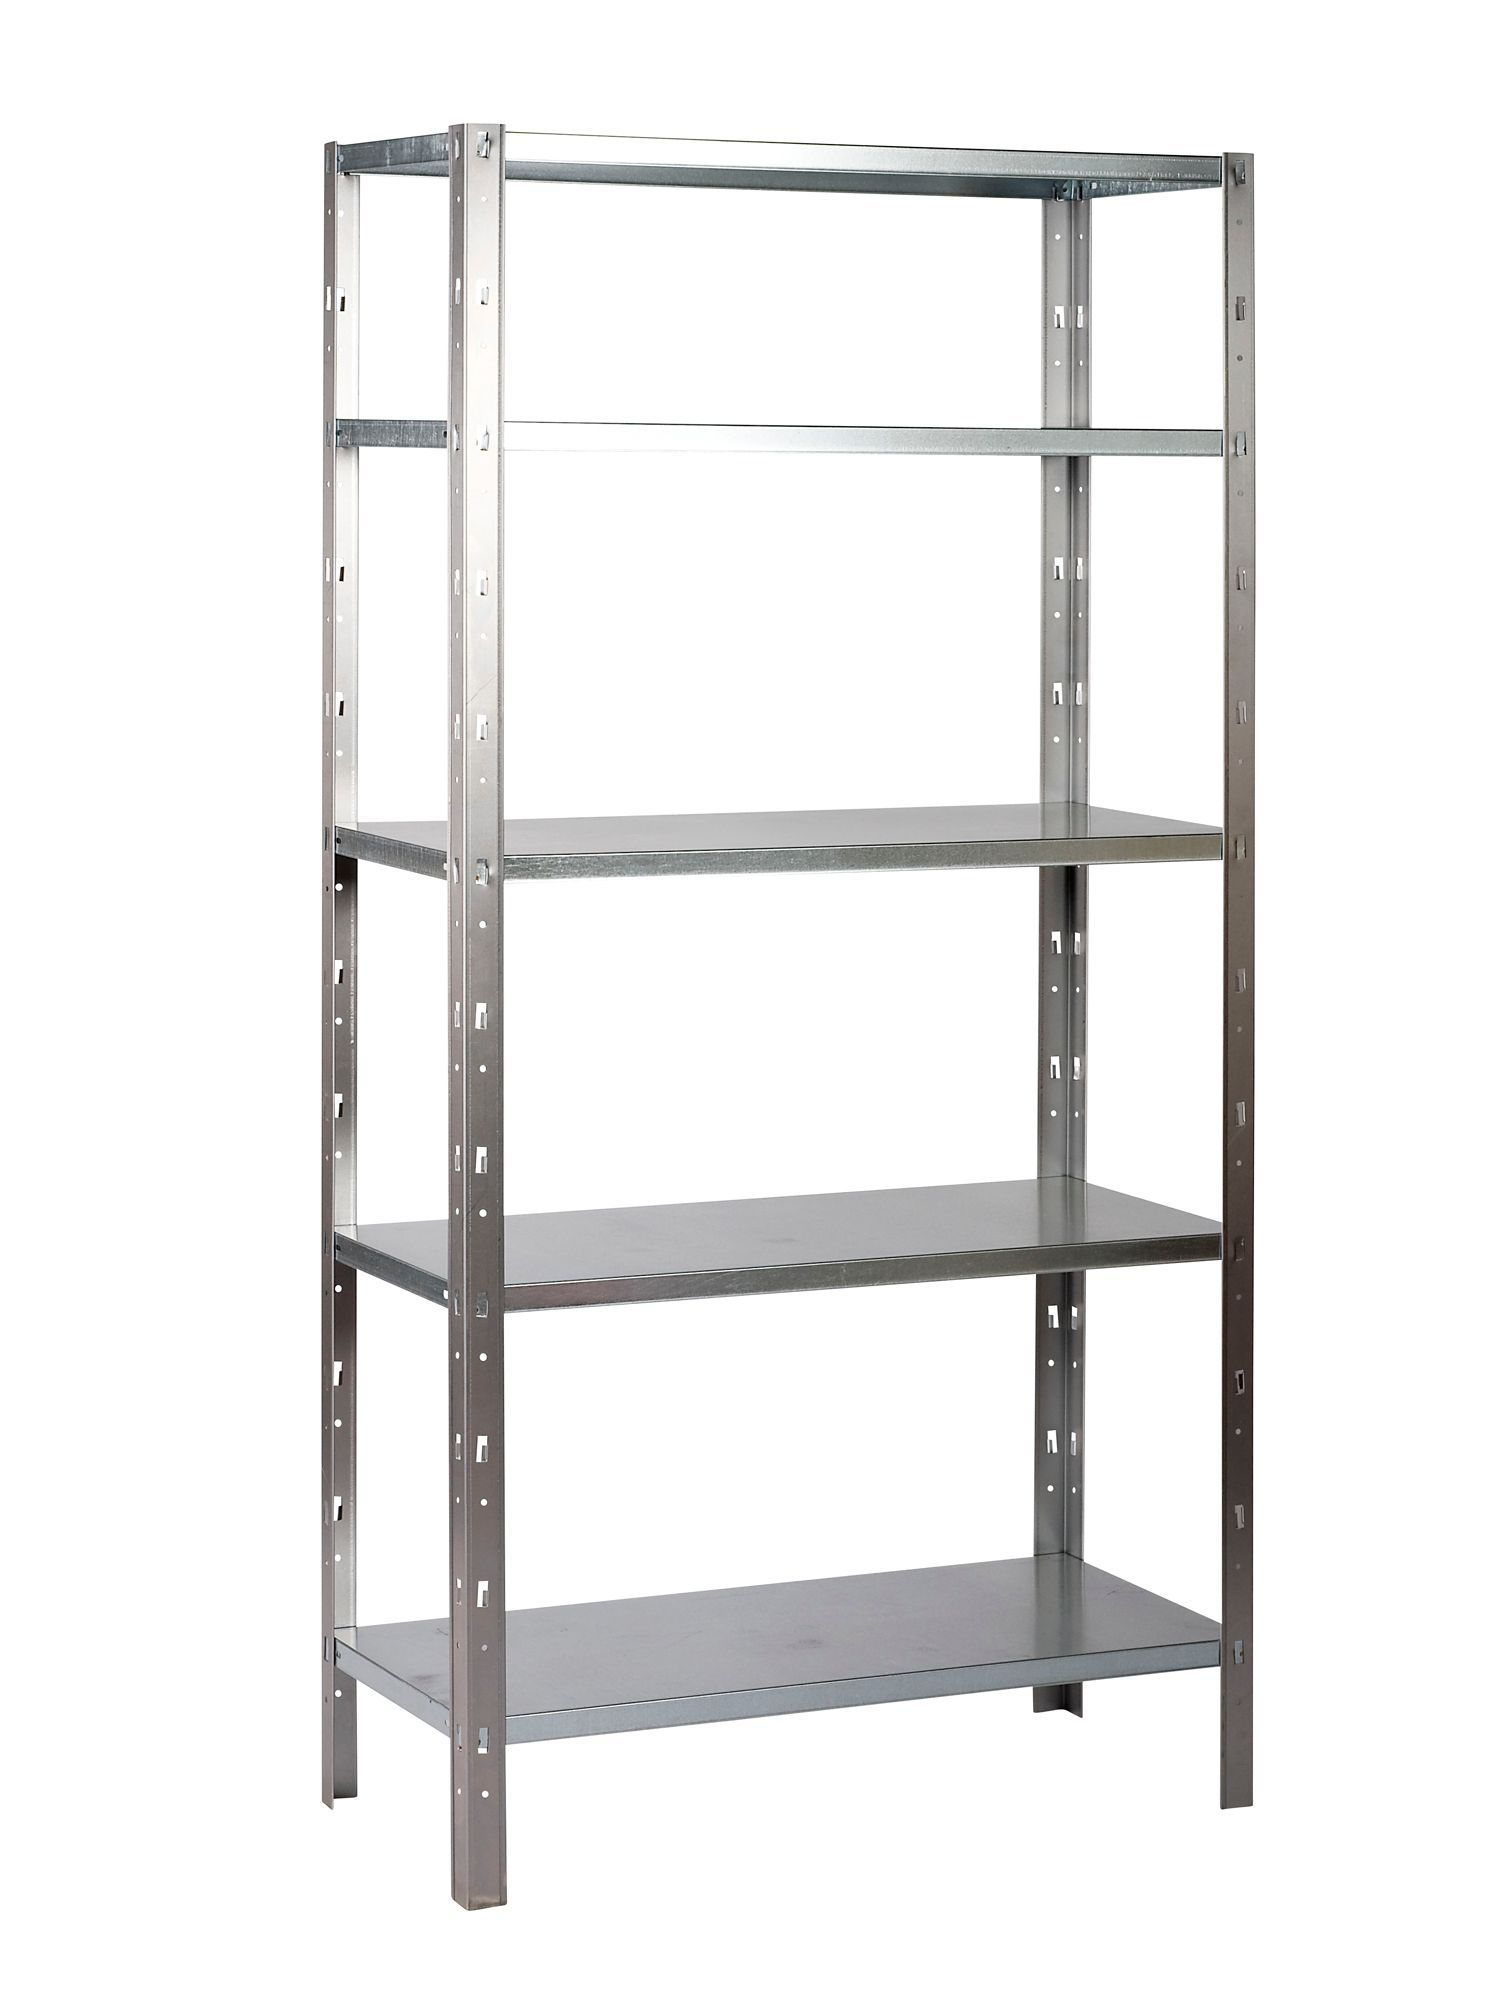 B&Q 5 Shelf Steel Shelving Unit